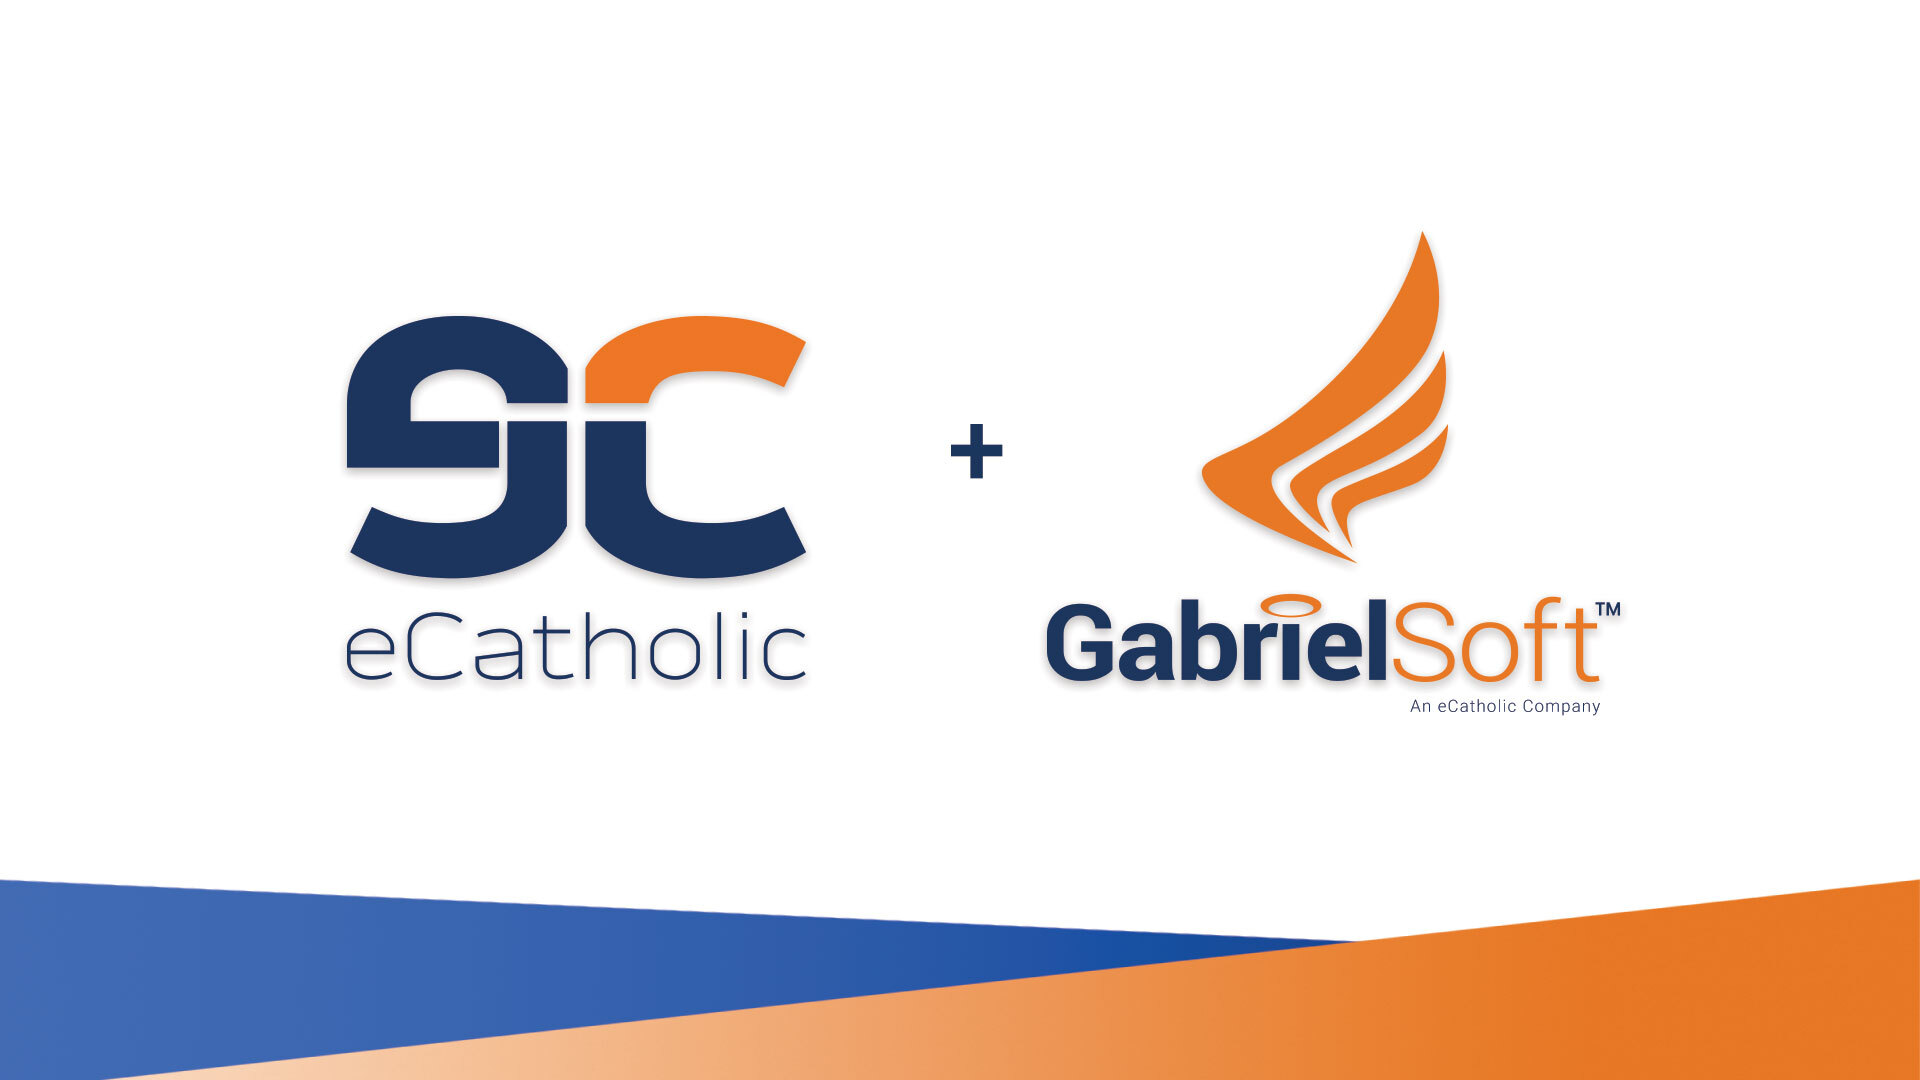 GabrielSoft joins the eCatholic family and product suite